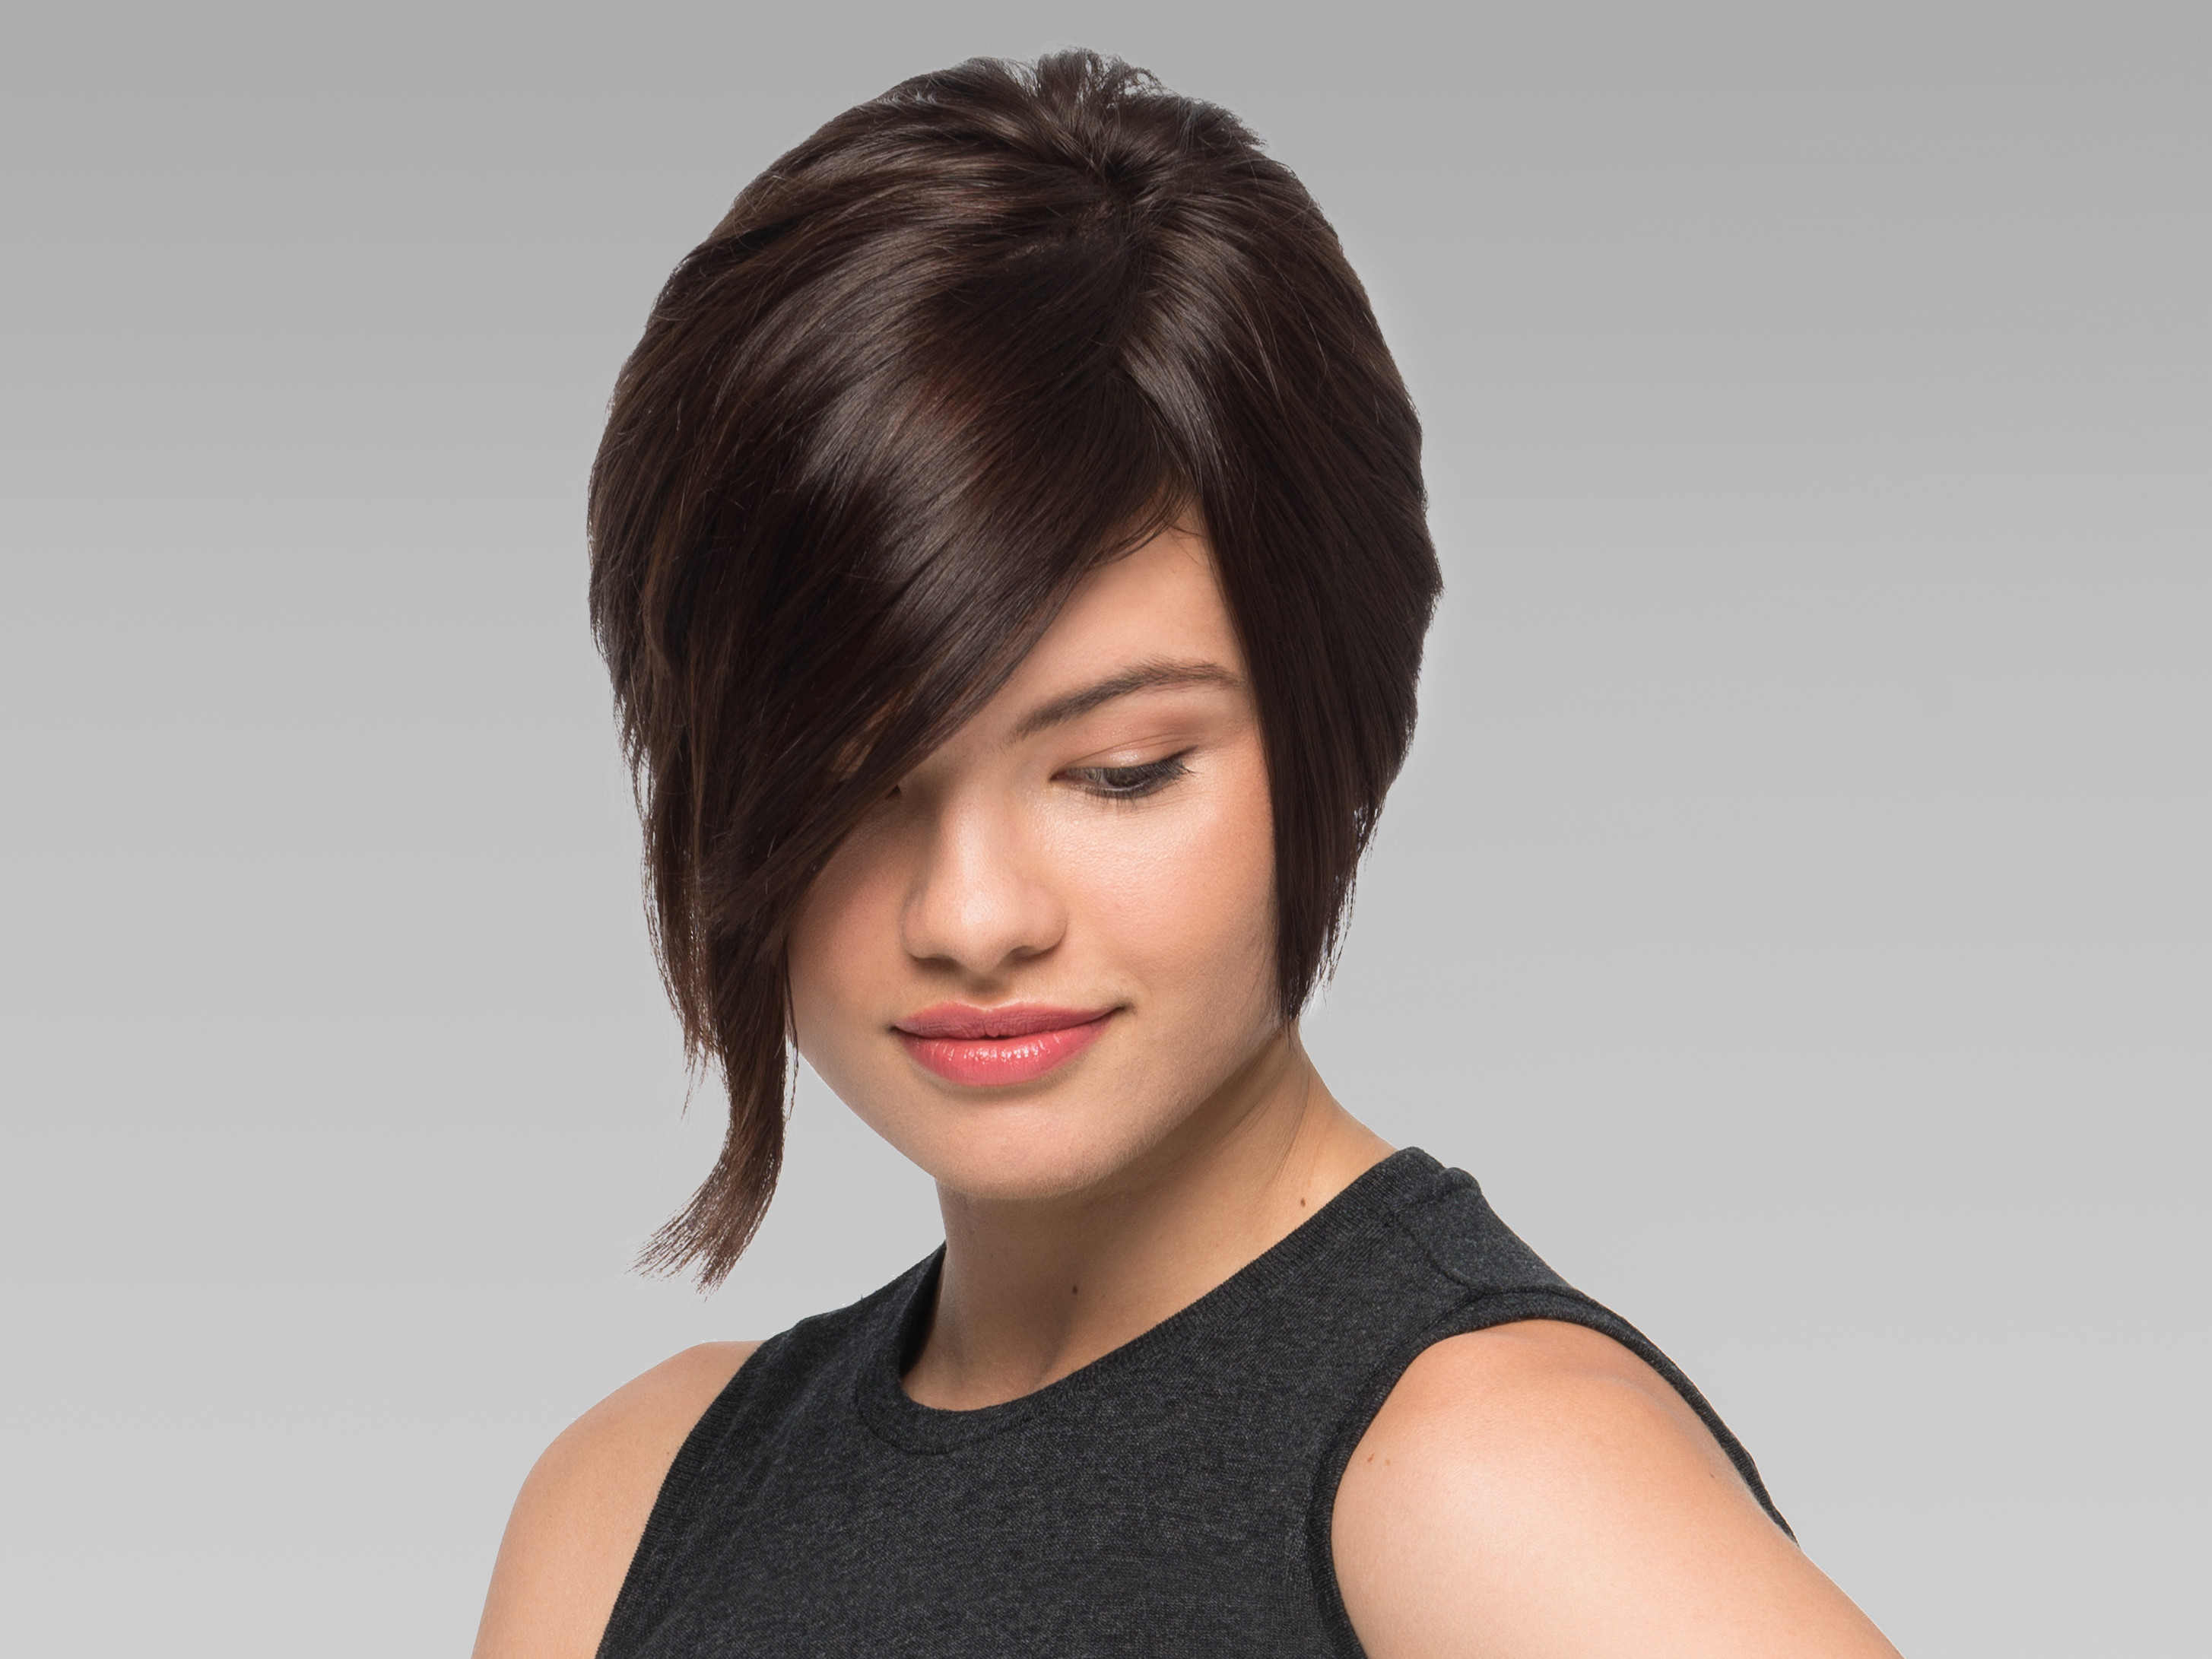 Best ideas about Female Haircuts . Save or Pin Women s Hairstyles Now.